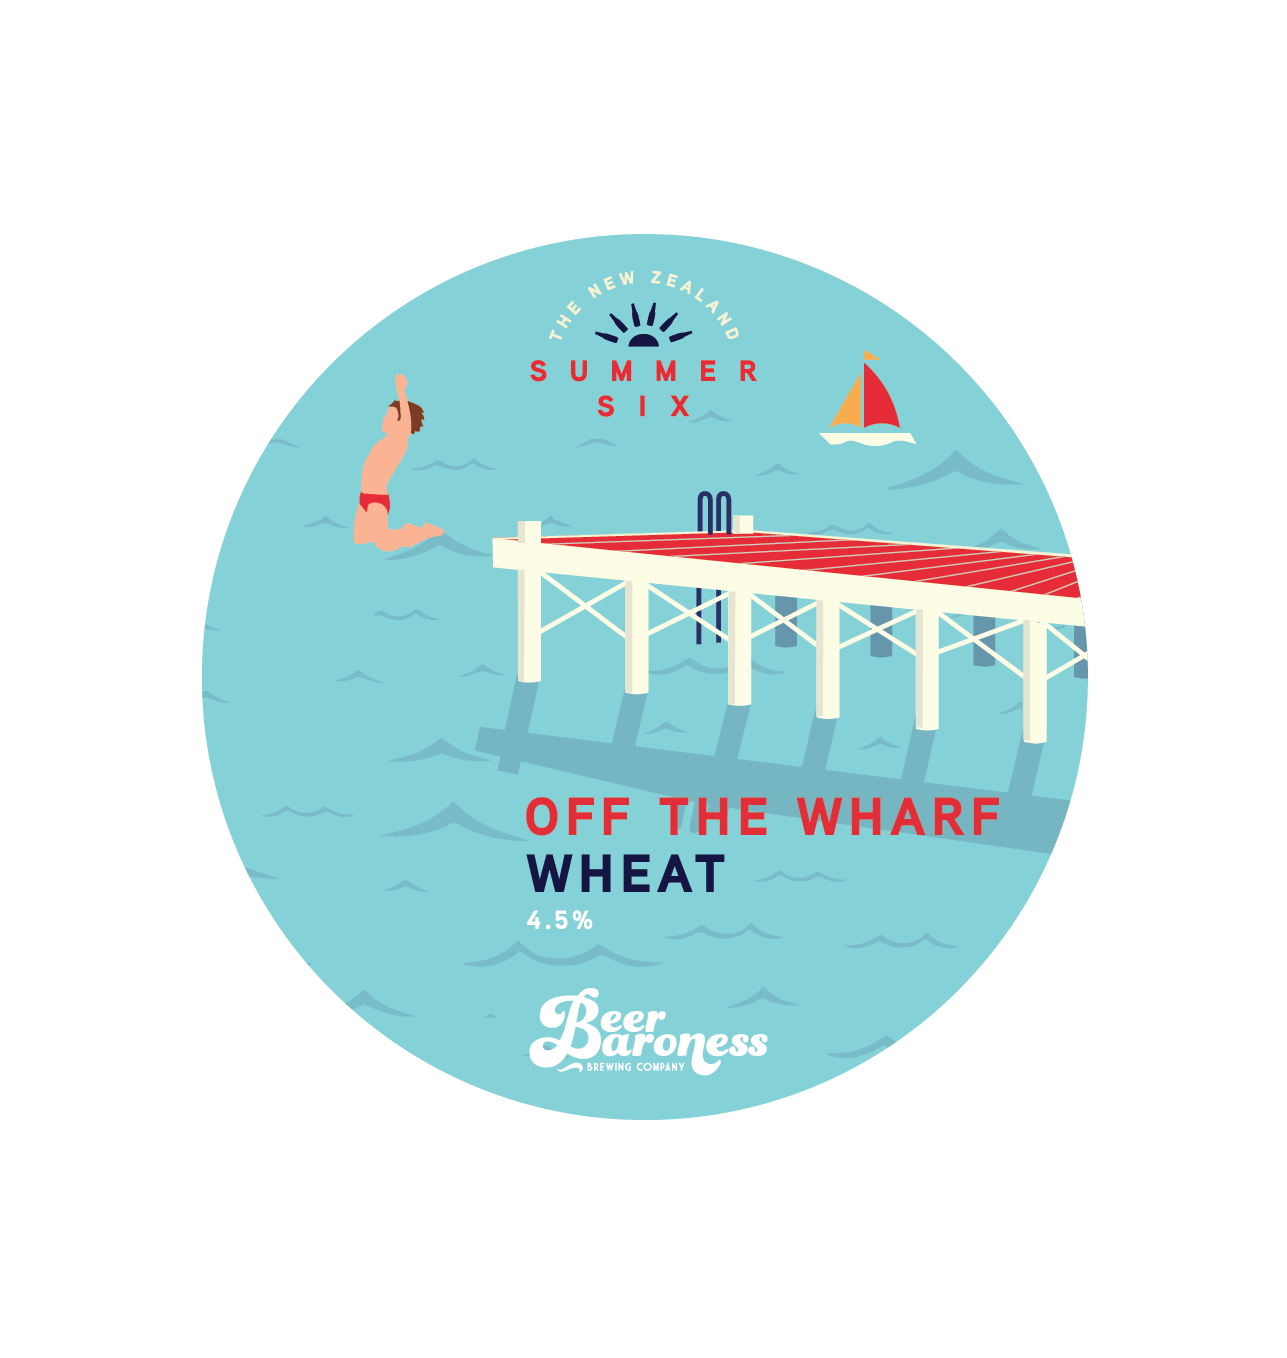 Beer Baroness Summer Six - Off the Wharf Wheat - Tap Badge Cropped.png